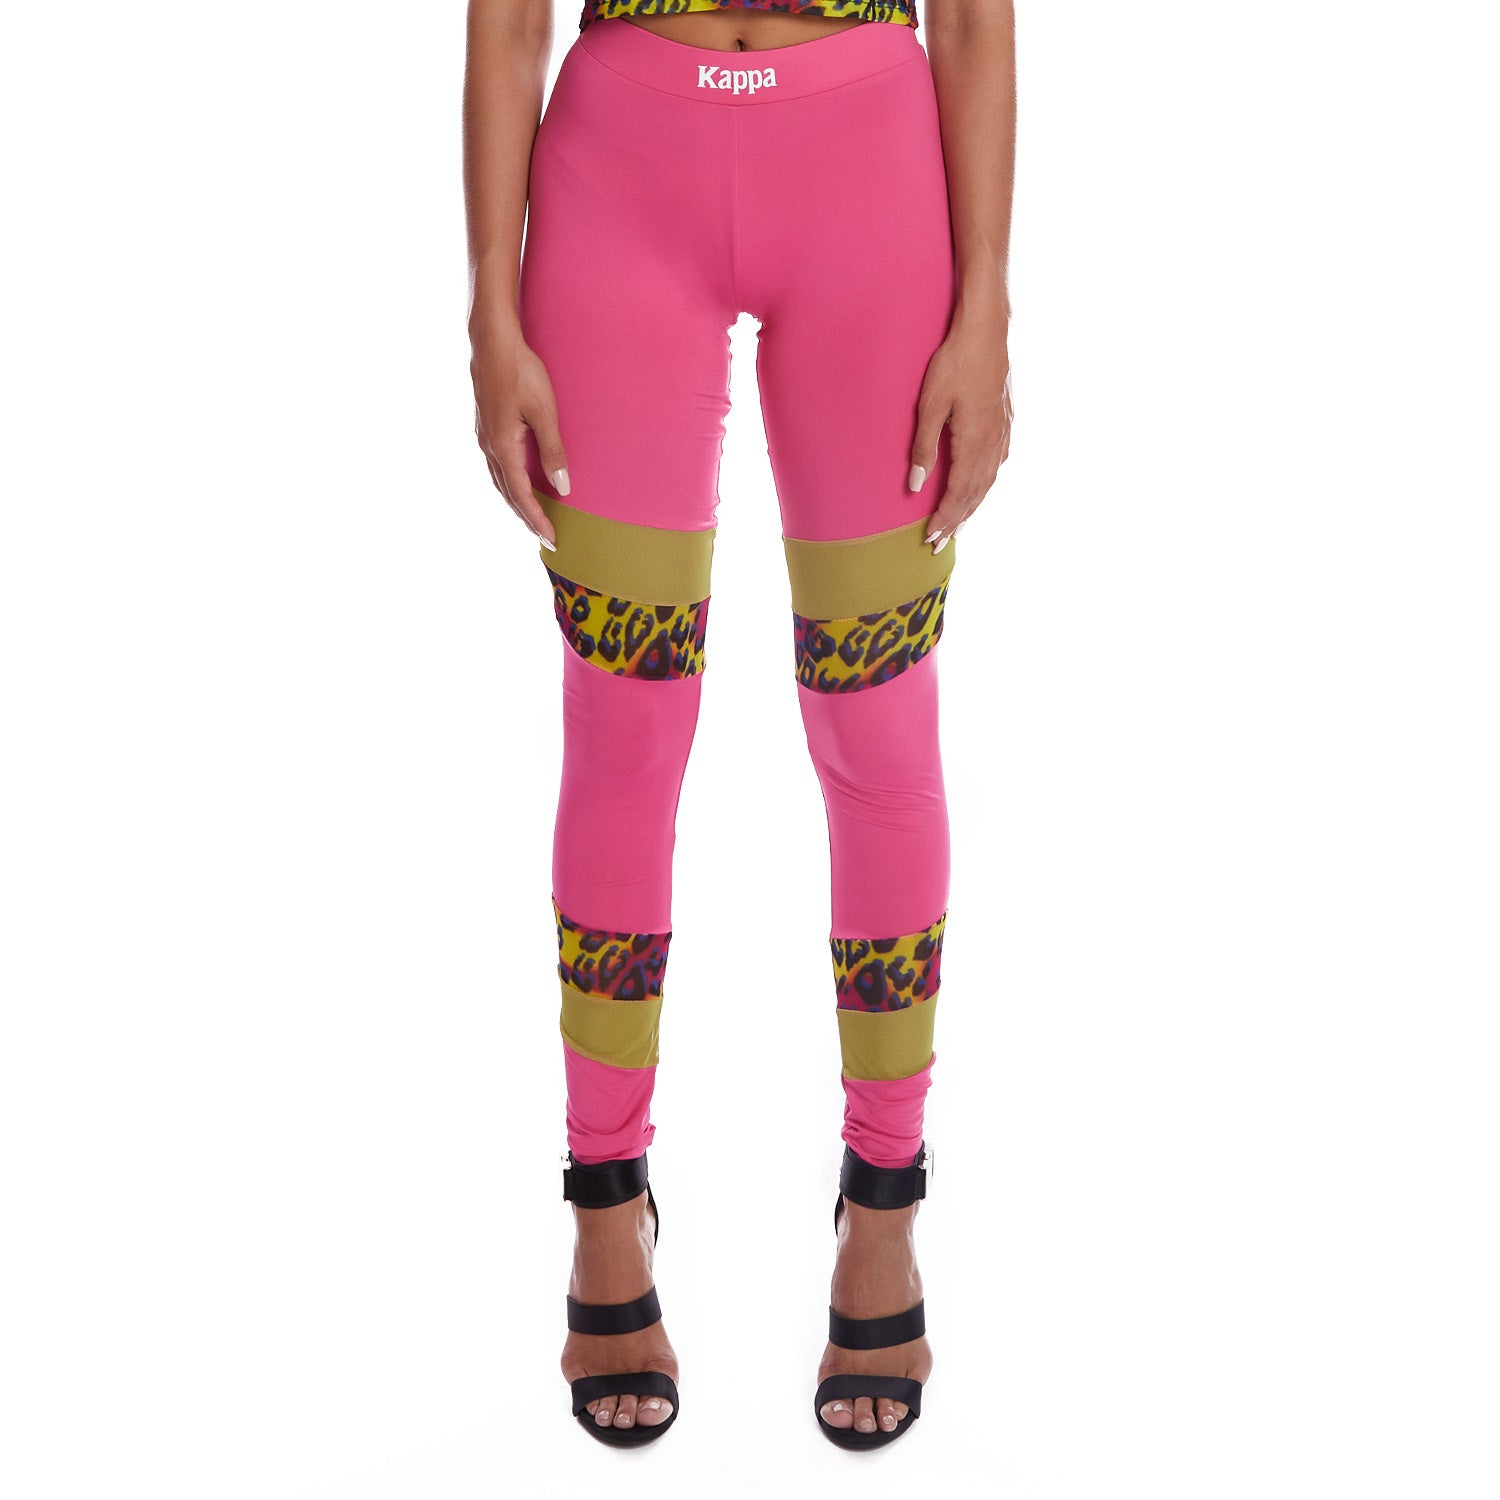 Kappa Authentic Delani Graphik Leggings - Fuchsia Graphic Cheetah